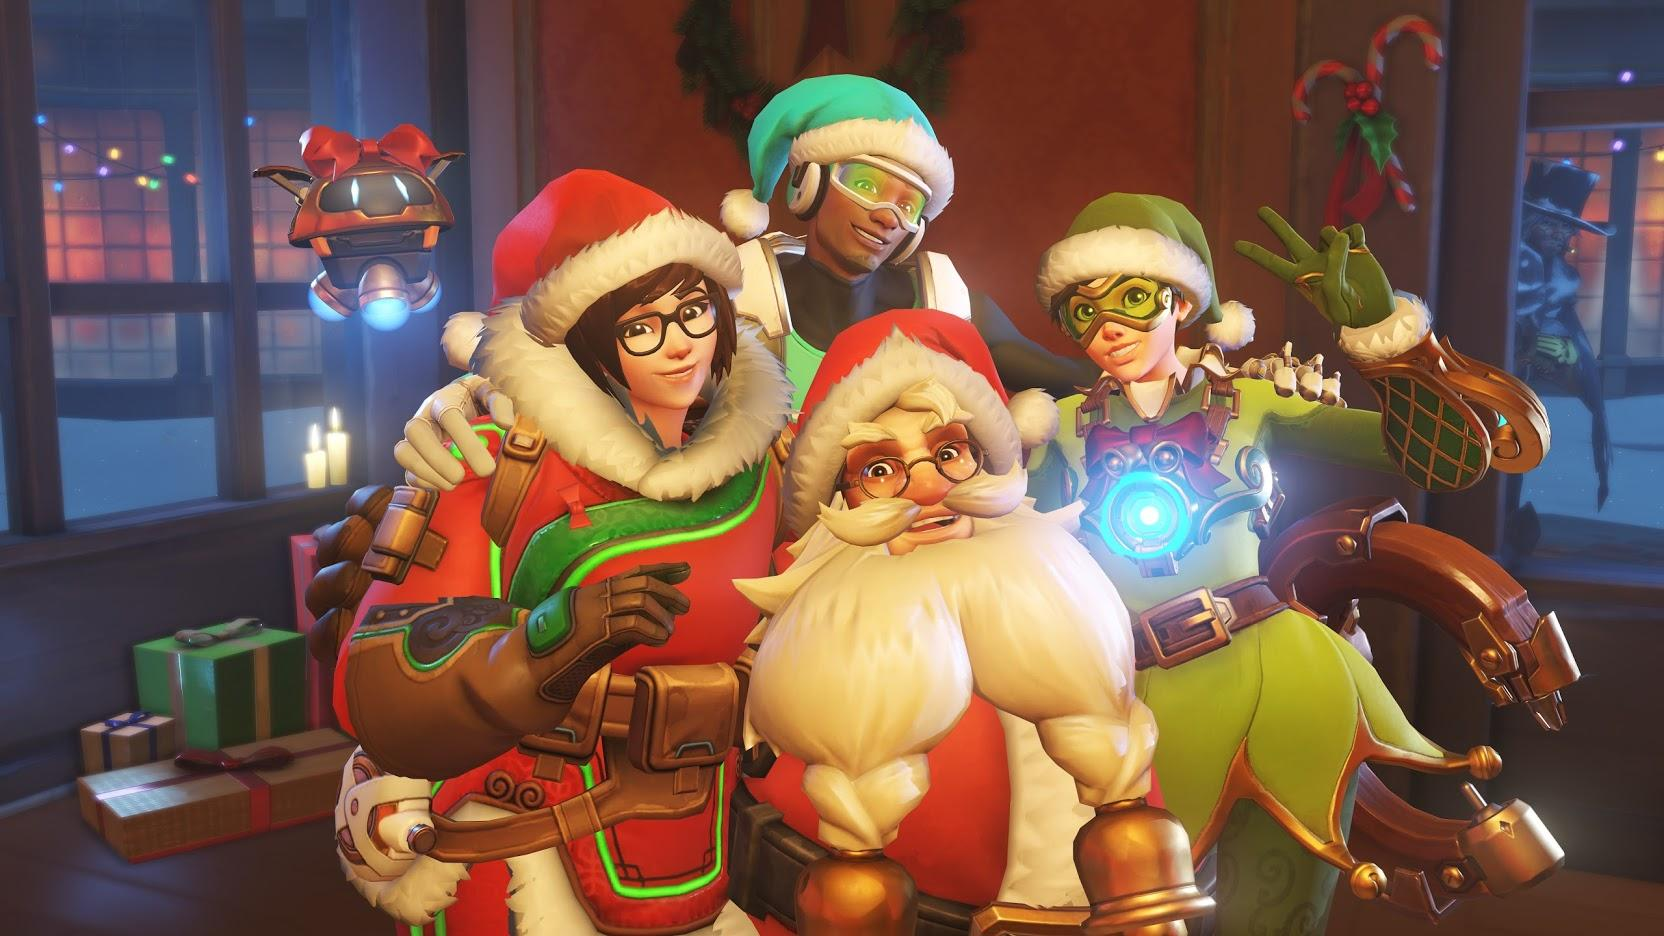 Overwatch's Winter Wonderland Will Be Returning December 12